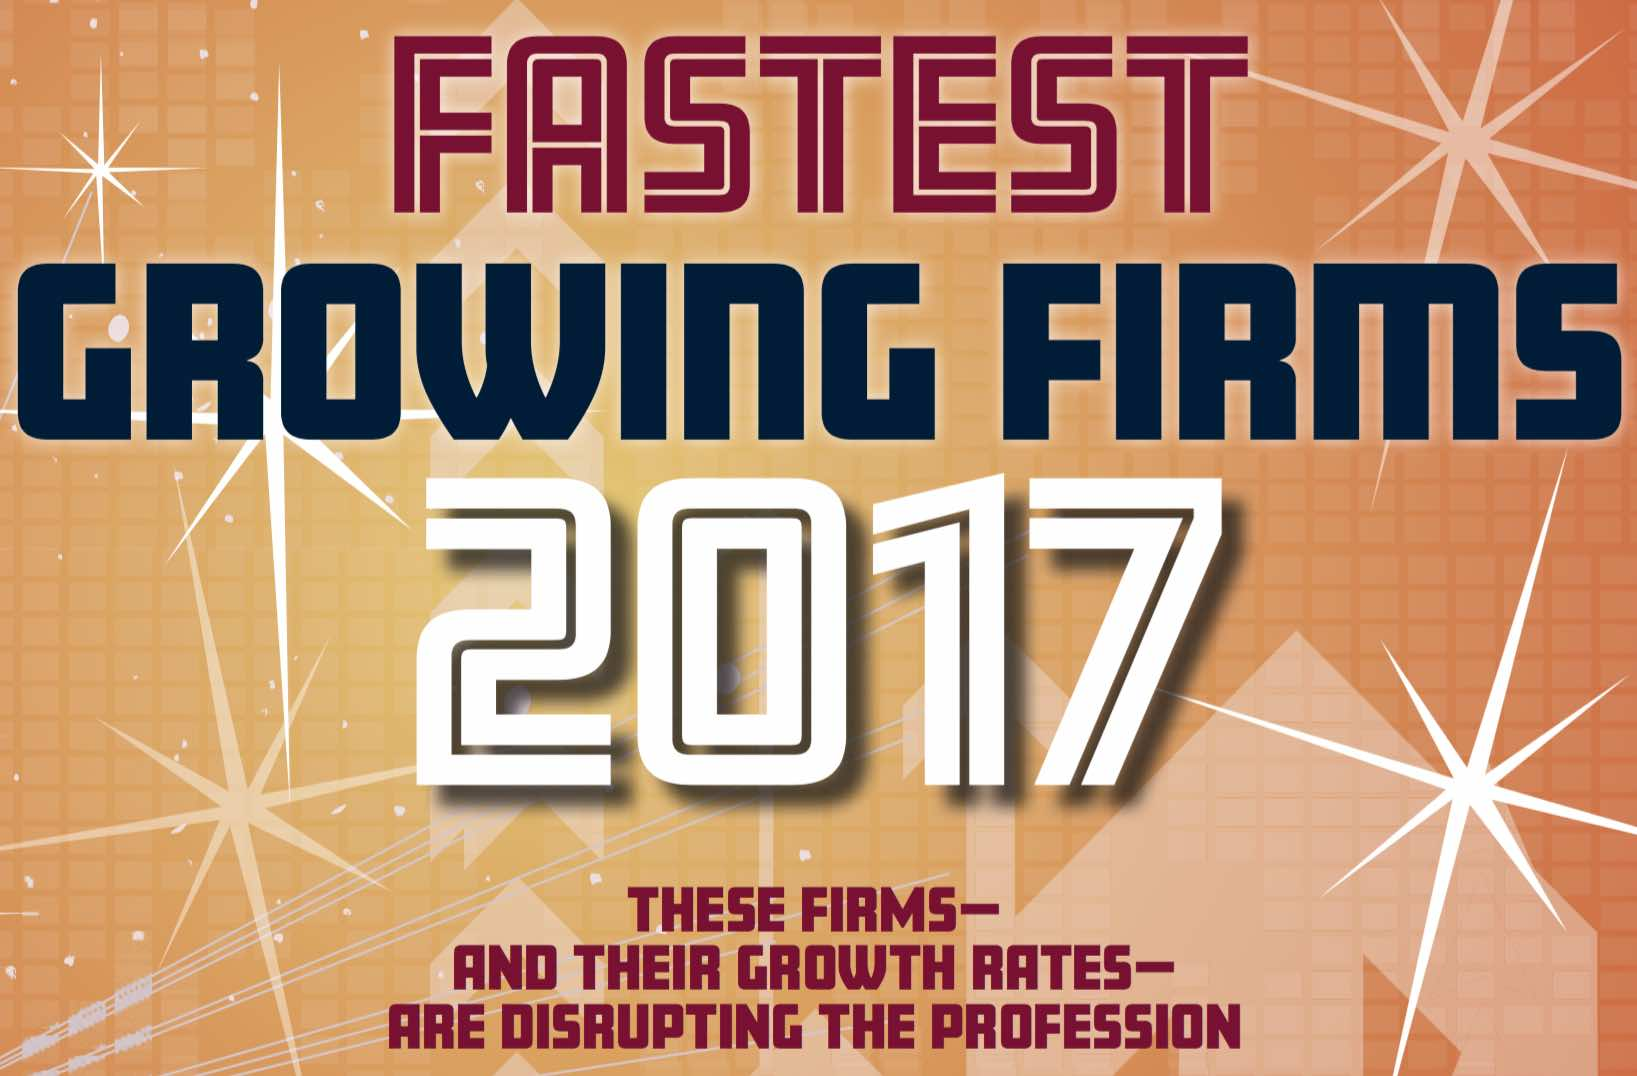 The 2017 Fastest Growing Firms